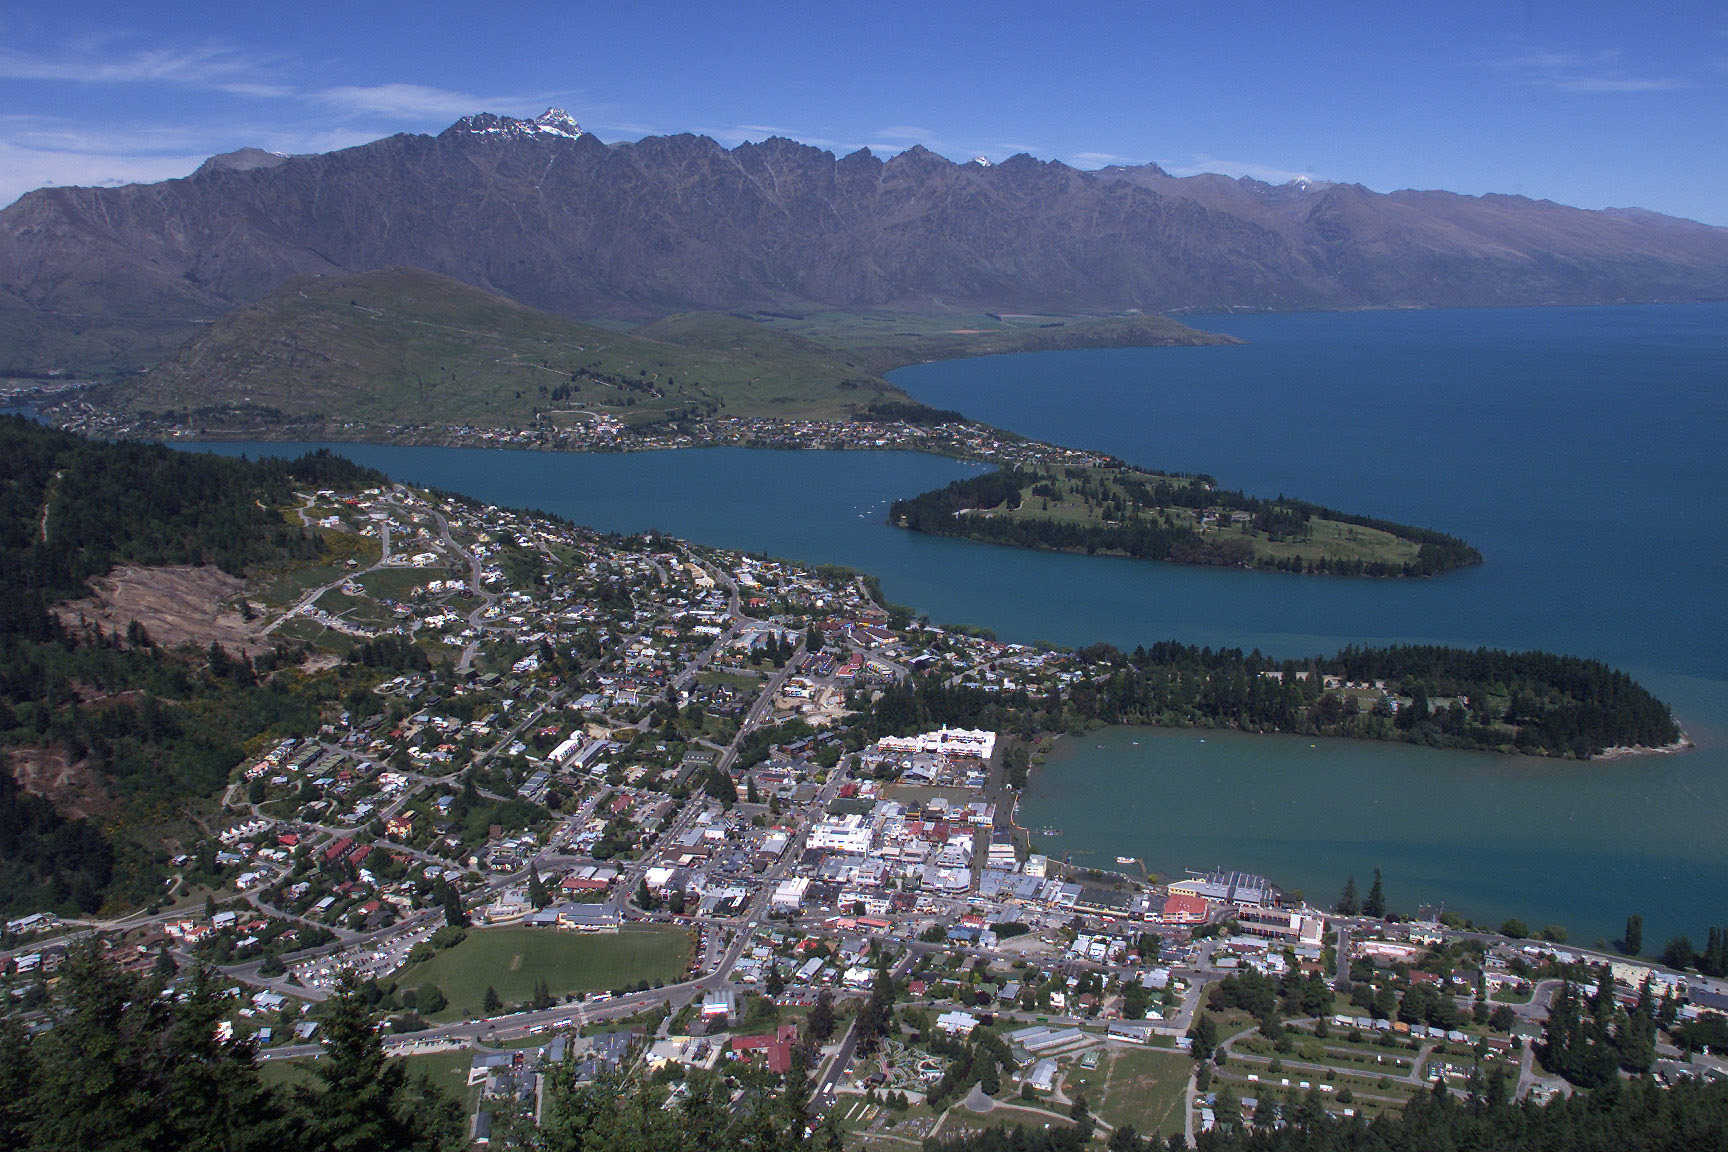 SkyCity gets consent to buy Queenstown lakeside site